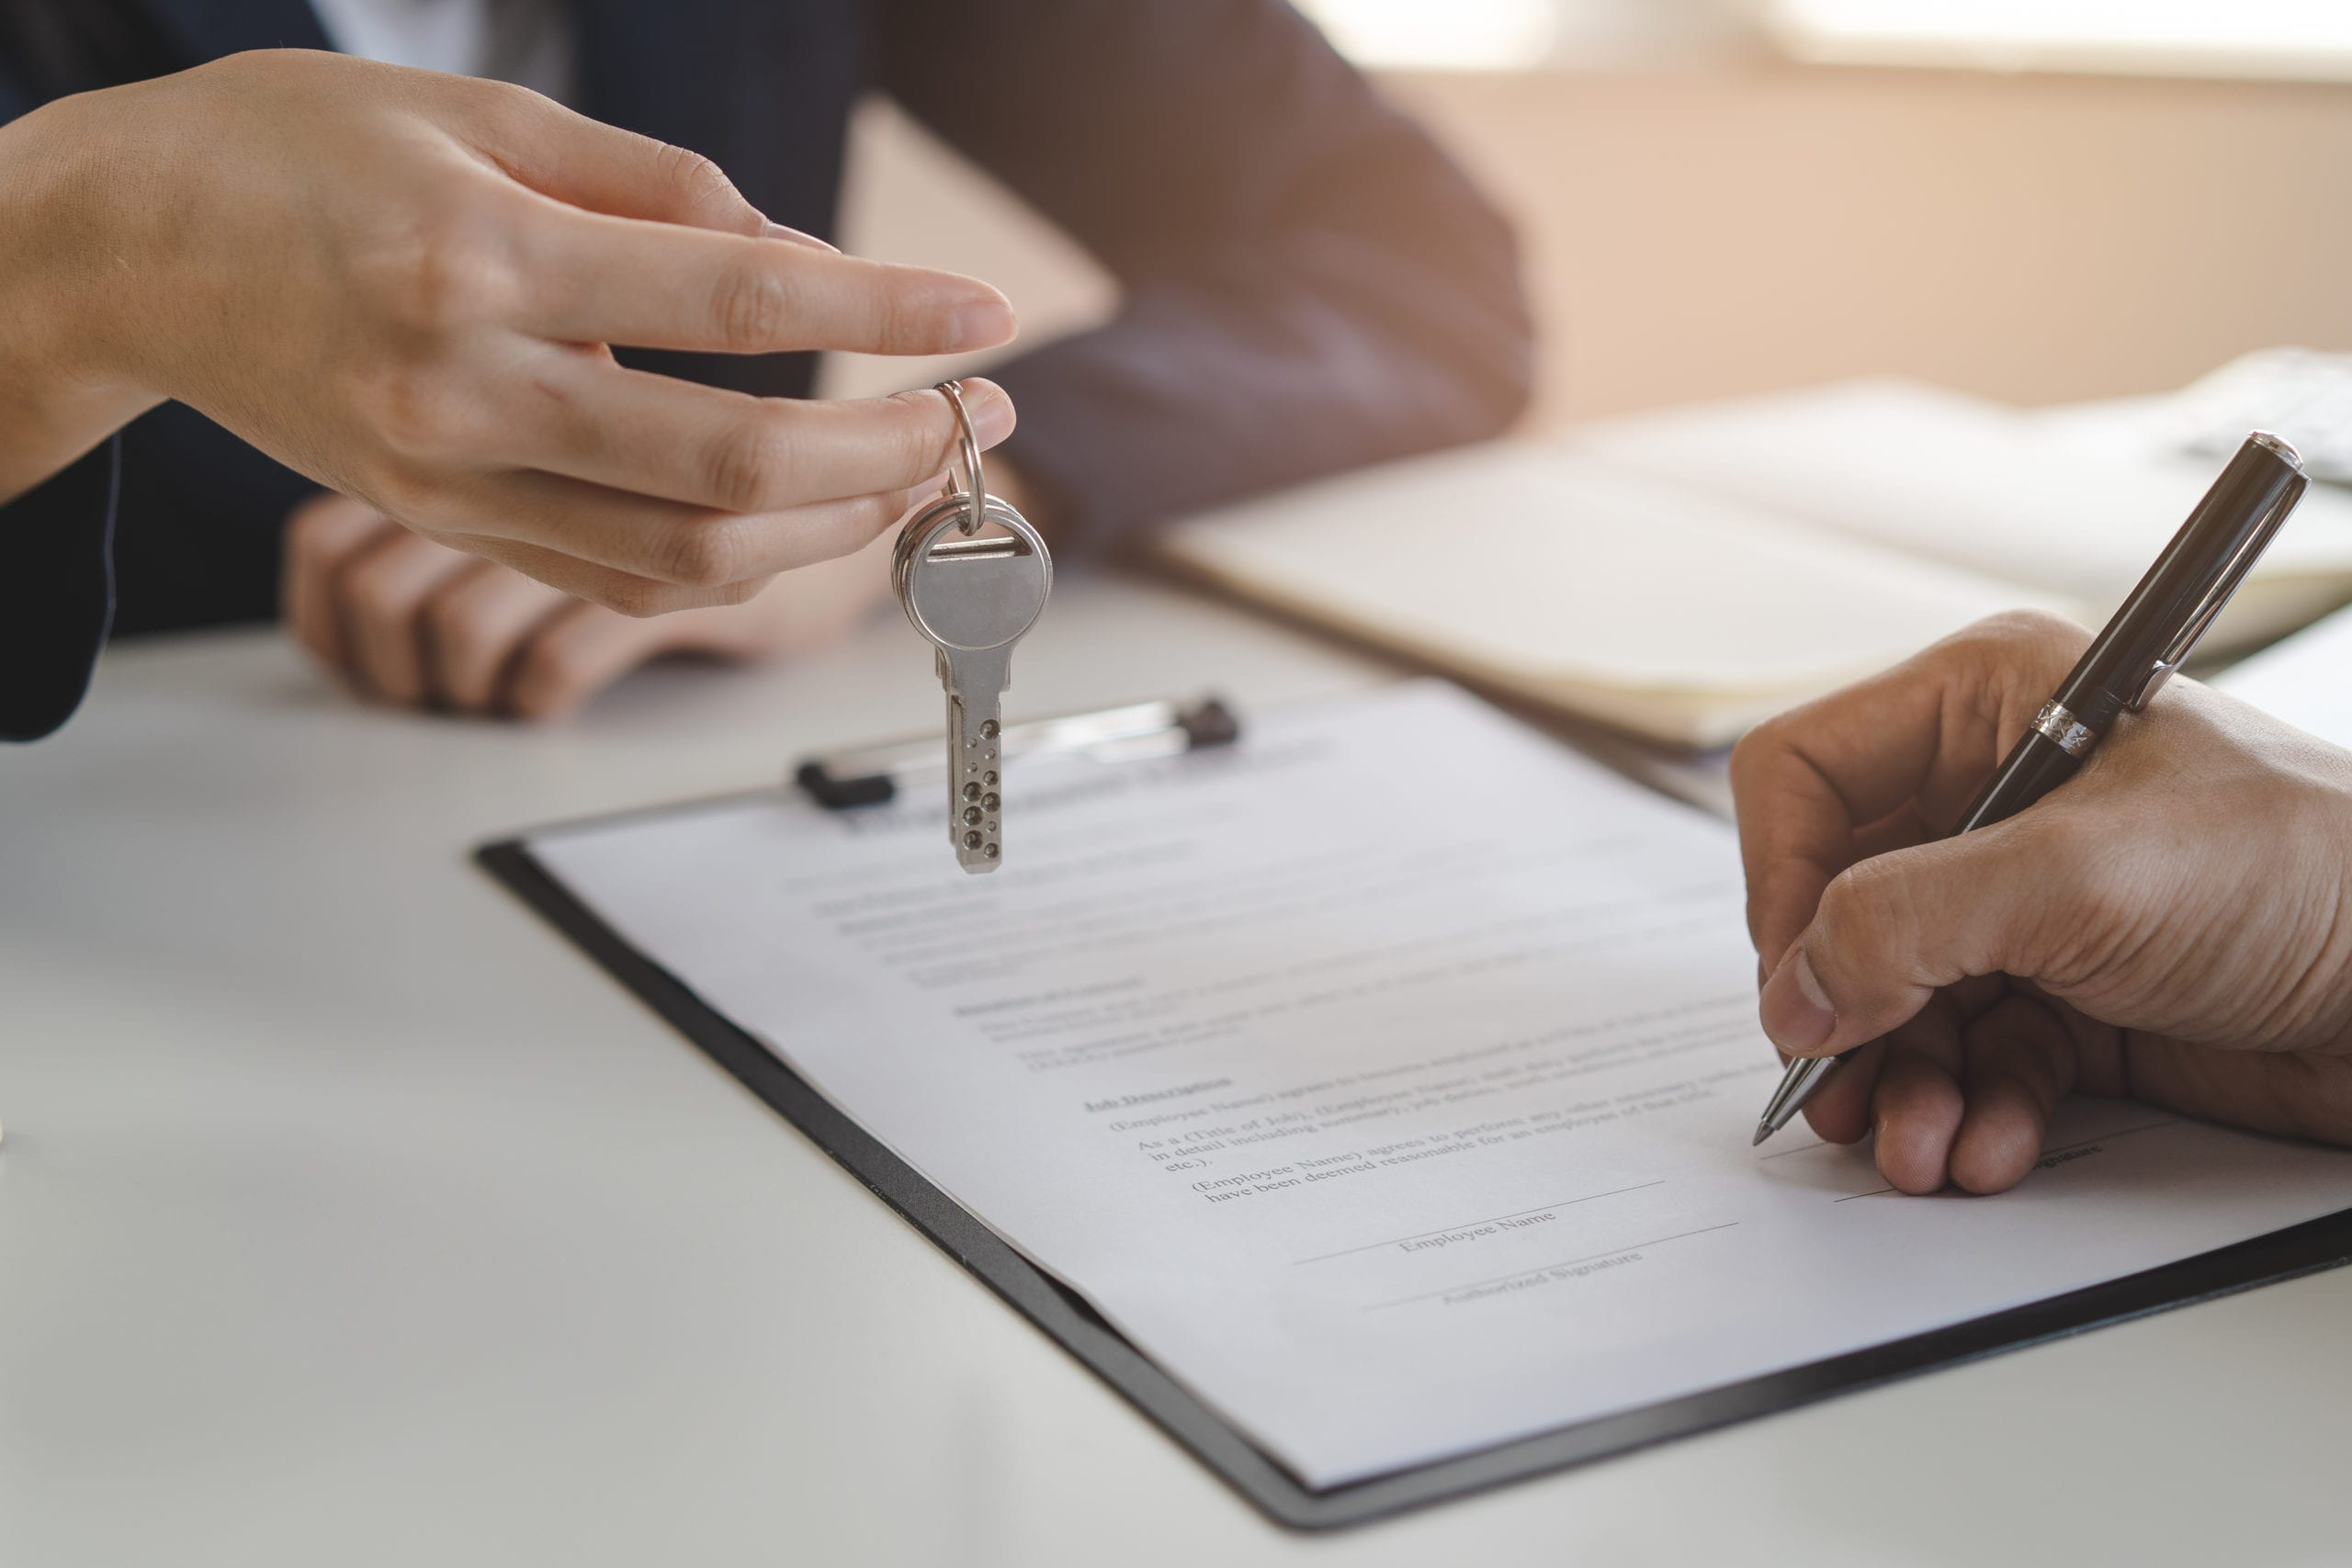 landlord giving a house keys to tenant after signed rental contract.